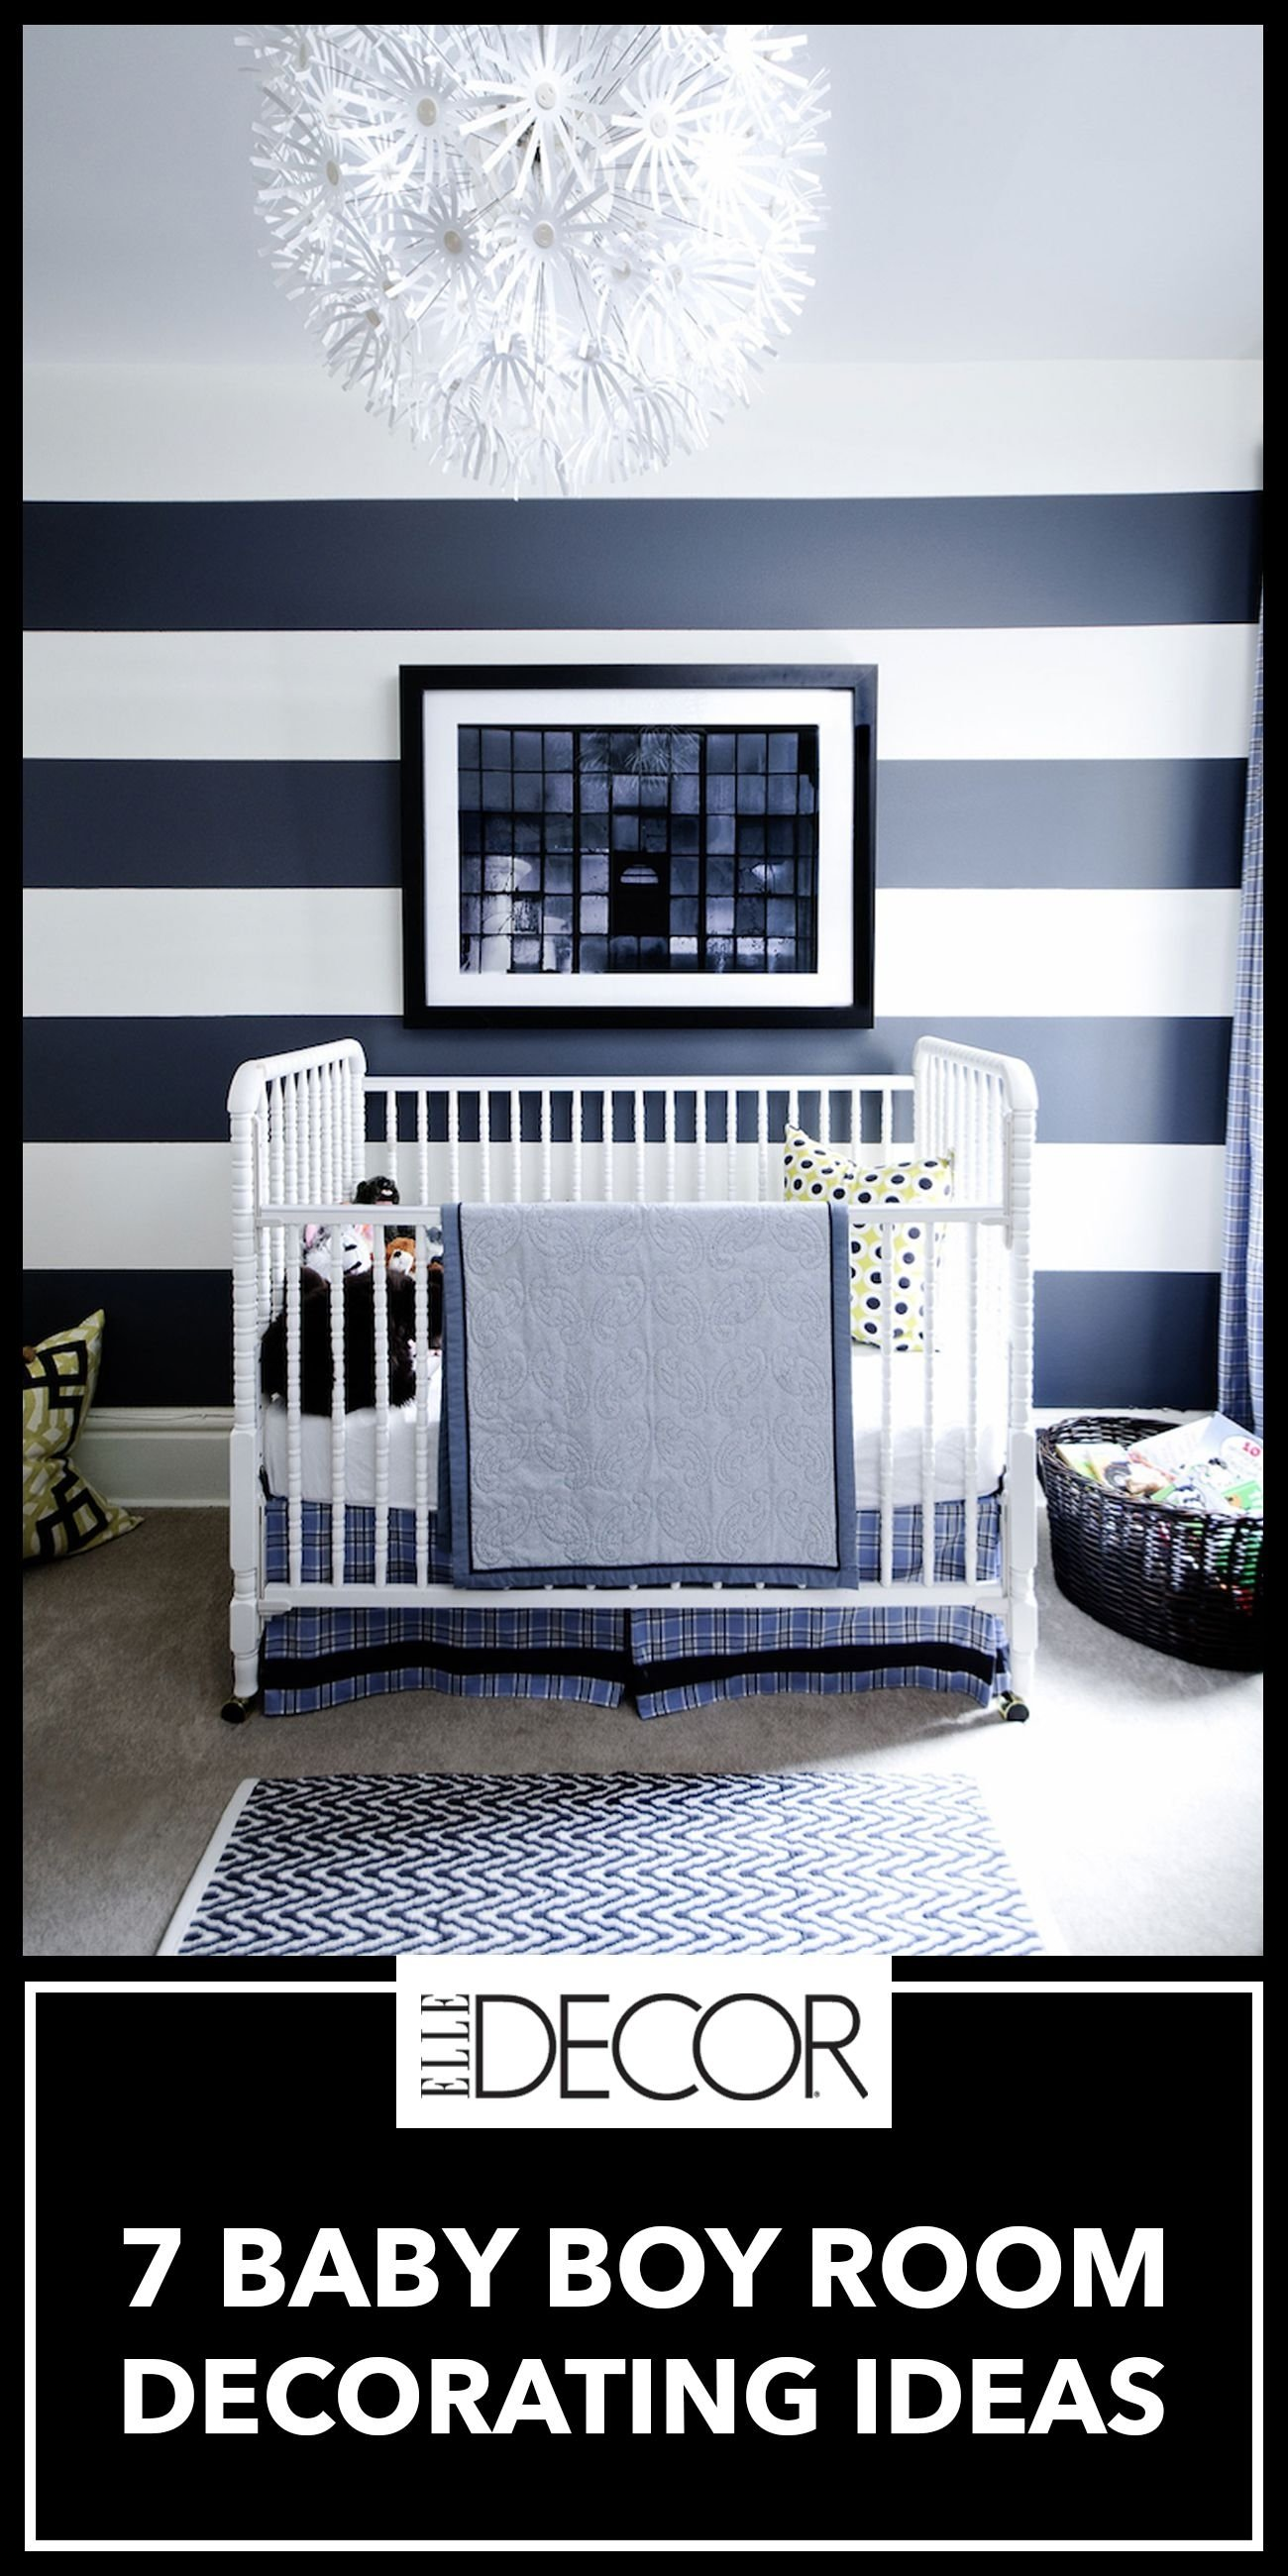 10 Unique Baby Boy Room Decor Ideas 7 baby boy room ideas cute boy nursery decorating ideas 2020